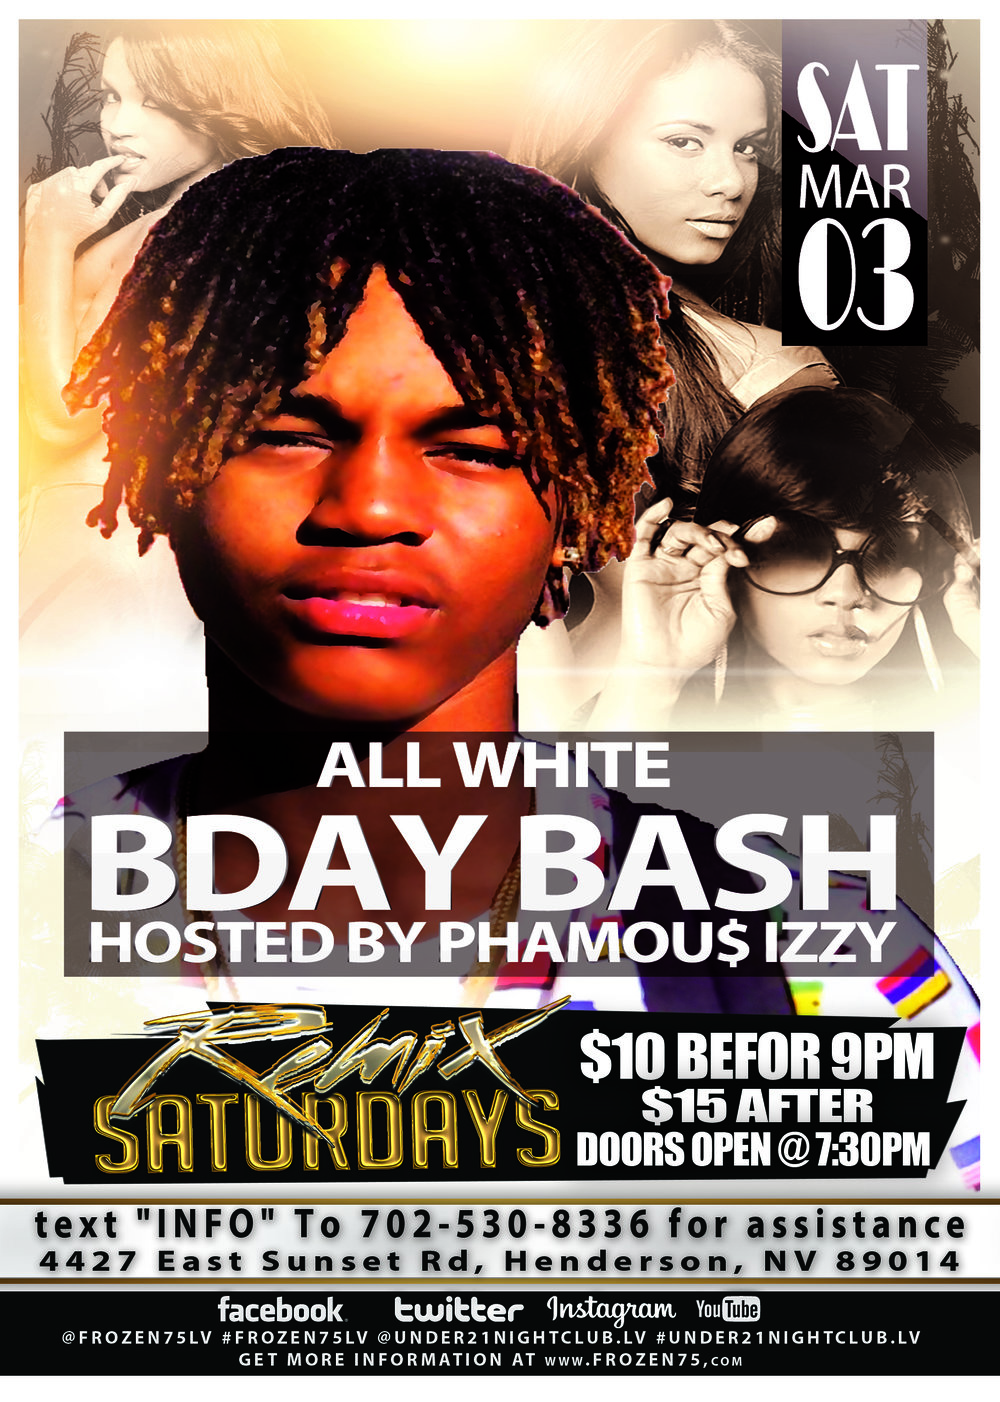 FroZEN75_3-03-2018__All White BDay Bash hosted by Phamou$ Izzy 2.jpg